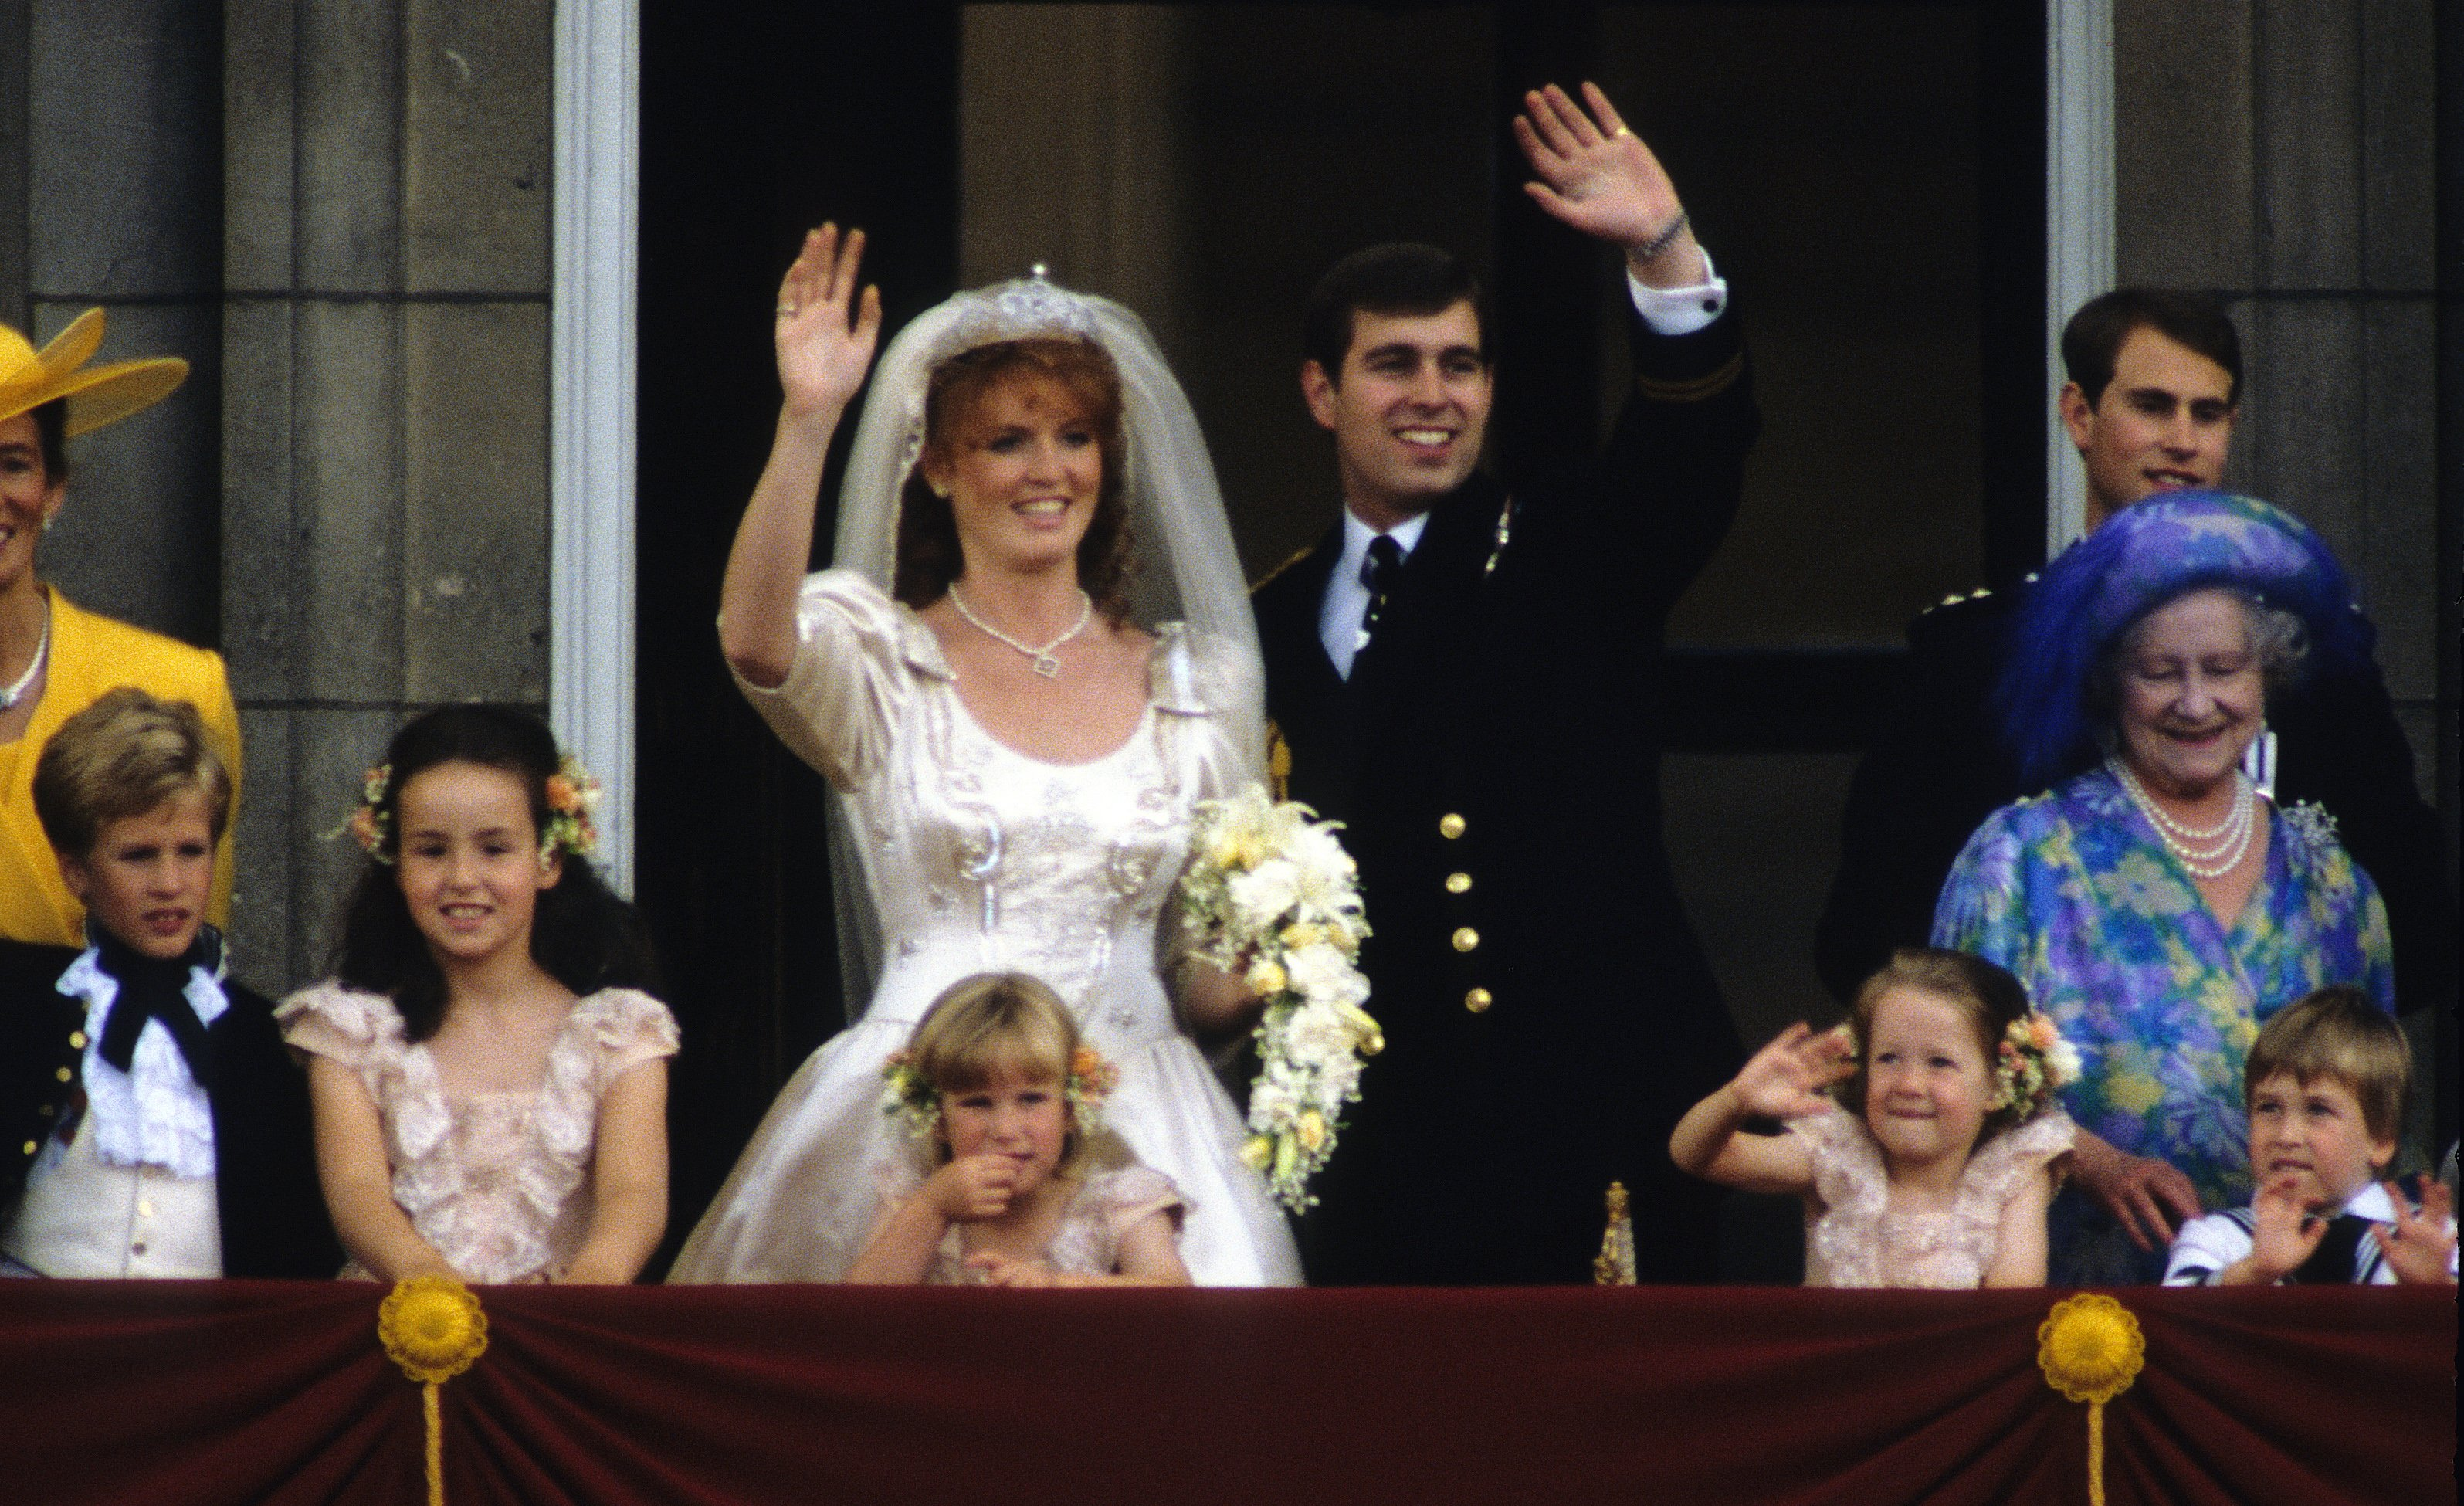 Image Source: Getty Images/John Shelley Collection/Avalon/The wedding of Prince Andrew, Duke of York, and Sarah Ferguson at Westminster Abbey, London, UK, 23rd July 1986